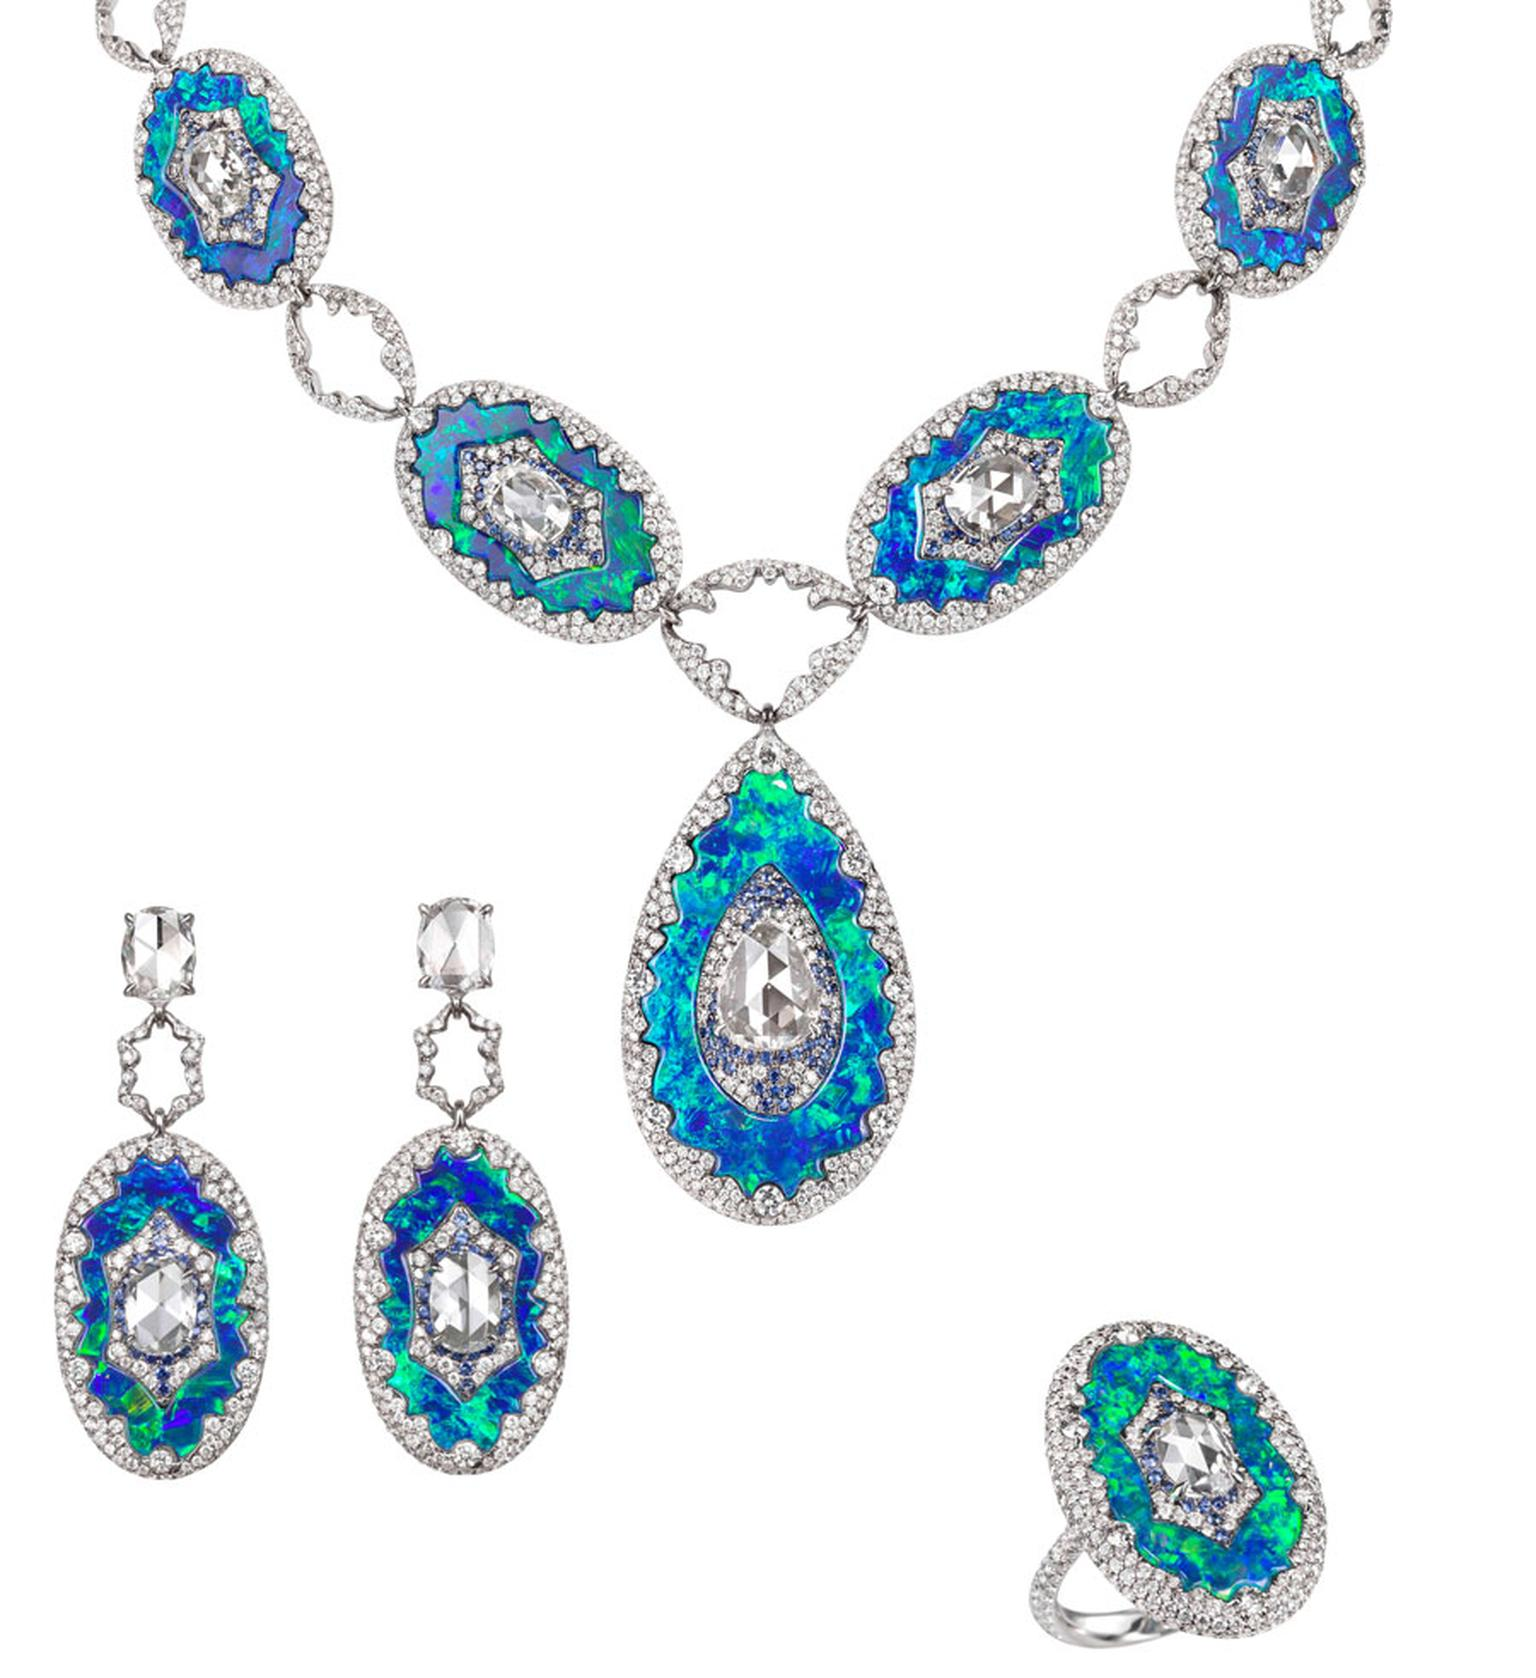 MPL-2013-BOGH-ART-diamond-inlaid-into-opal-set.jpg